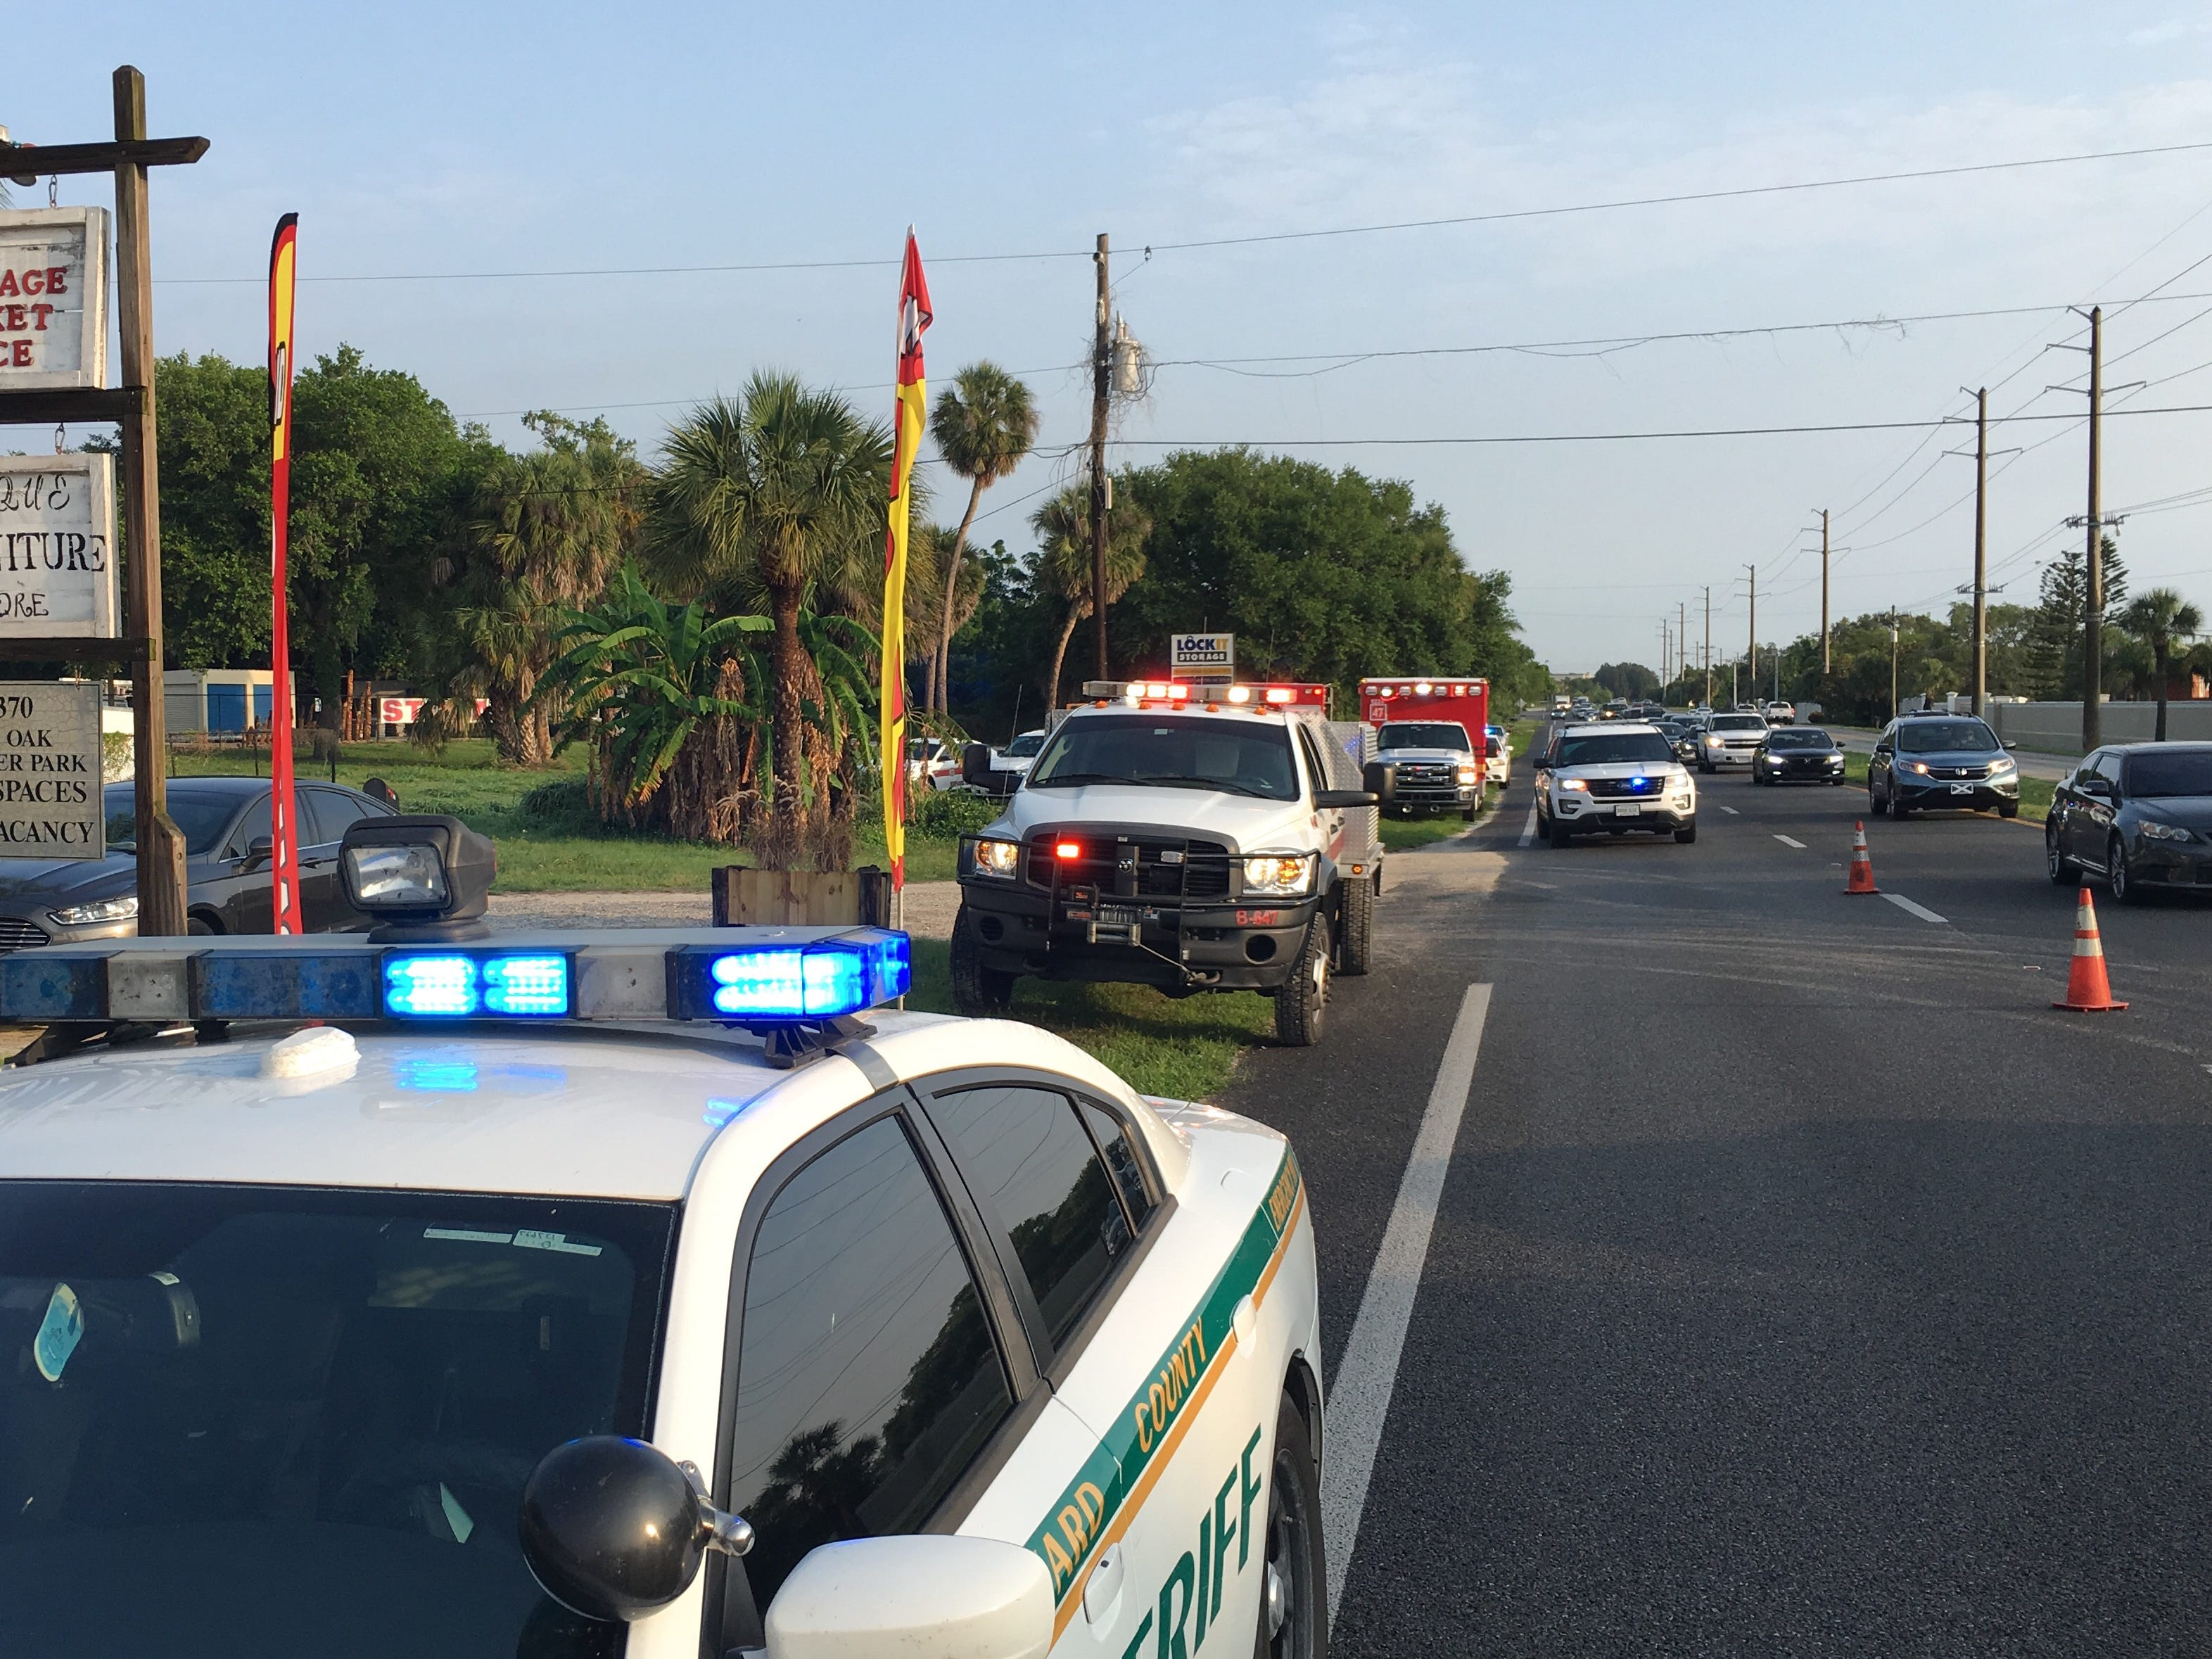 The fire was reported about 6:30 a.m. in a home in the 6300 block of U.S. 1 in Palm Shores.